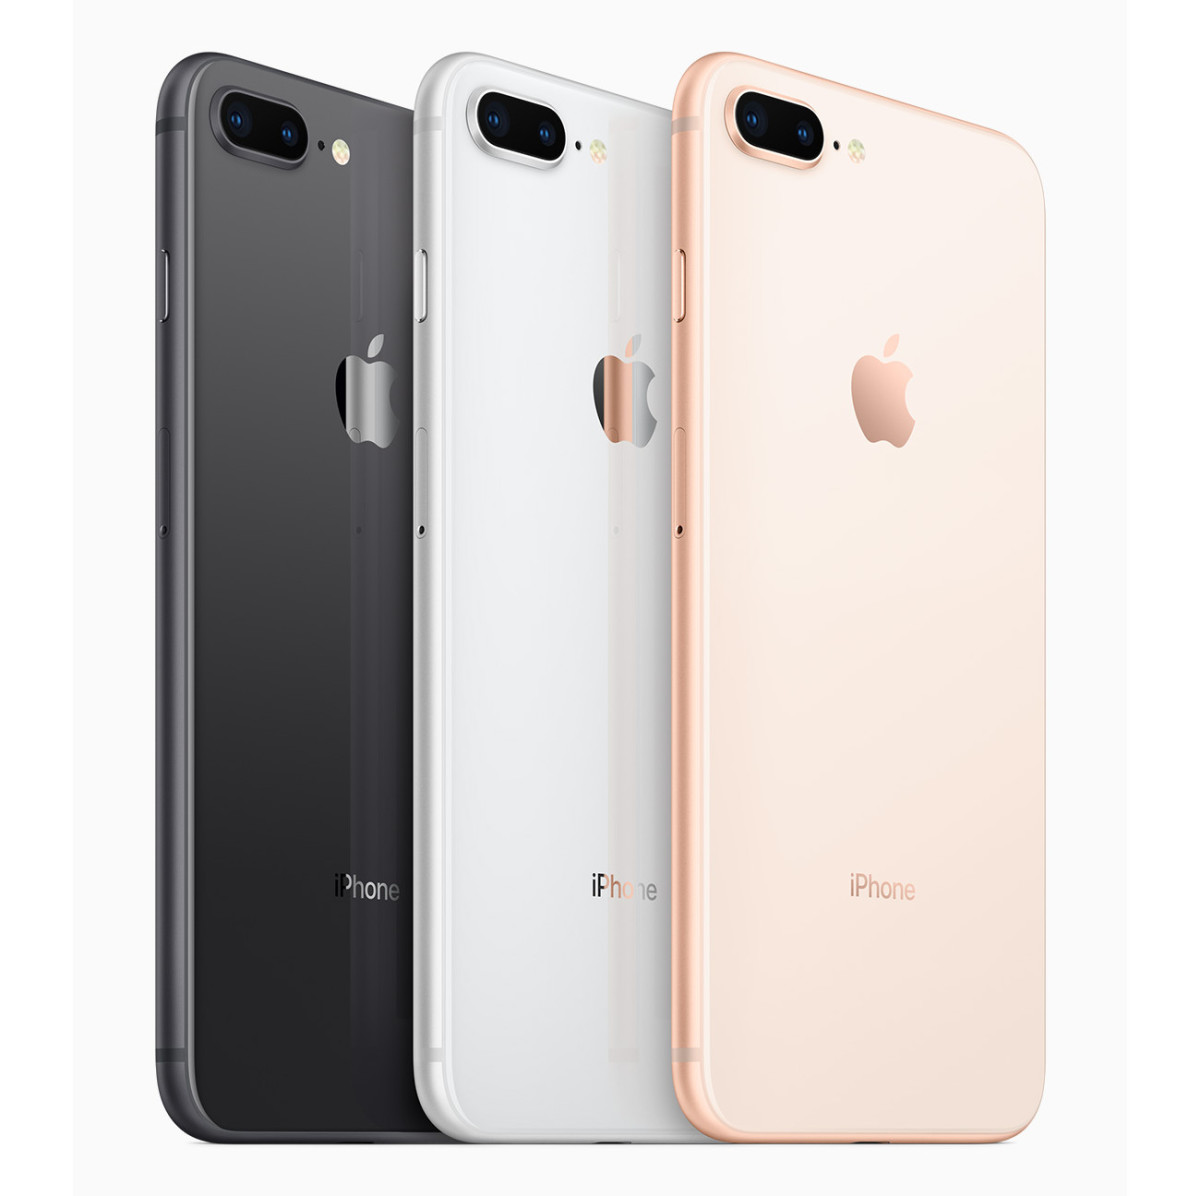 apple-iphone-8-and-8-plus-02